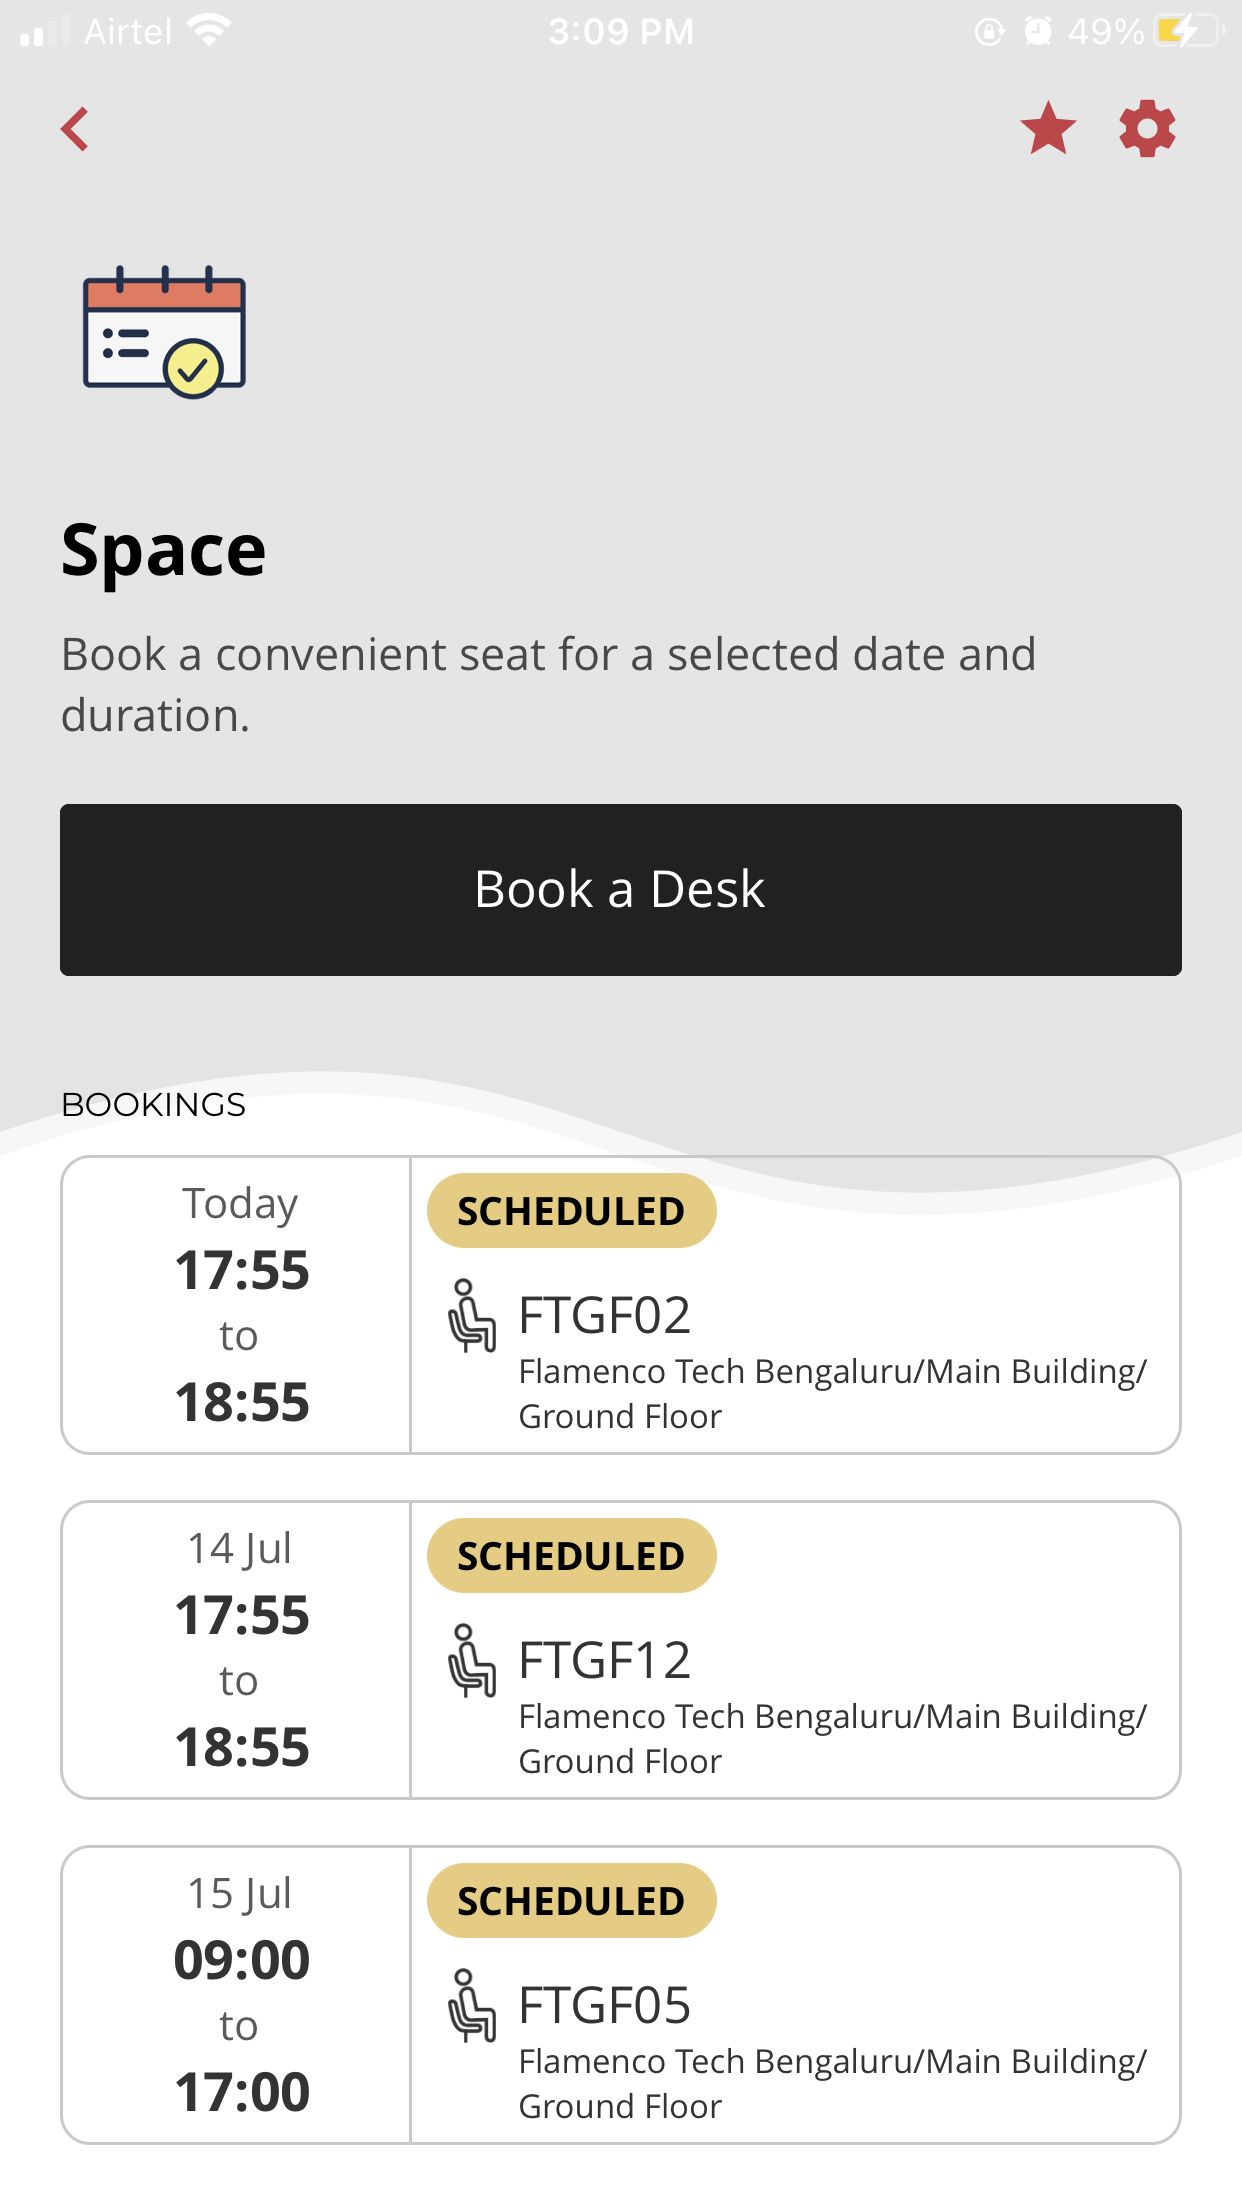 Easy to use mobile app for the employees offering desk booking with options to select seats based on amenities, department, search for a colleague/ workstation, view seating plans & many more.